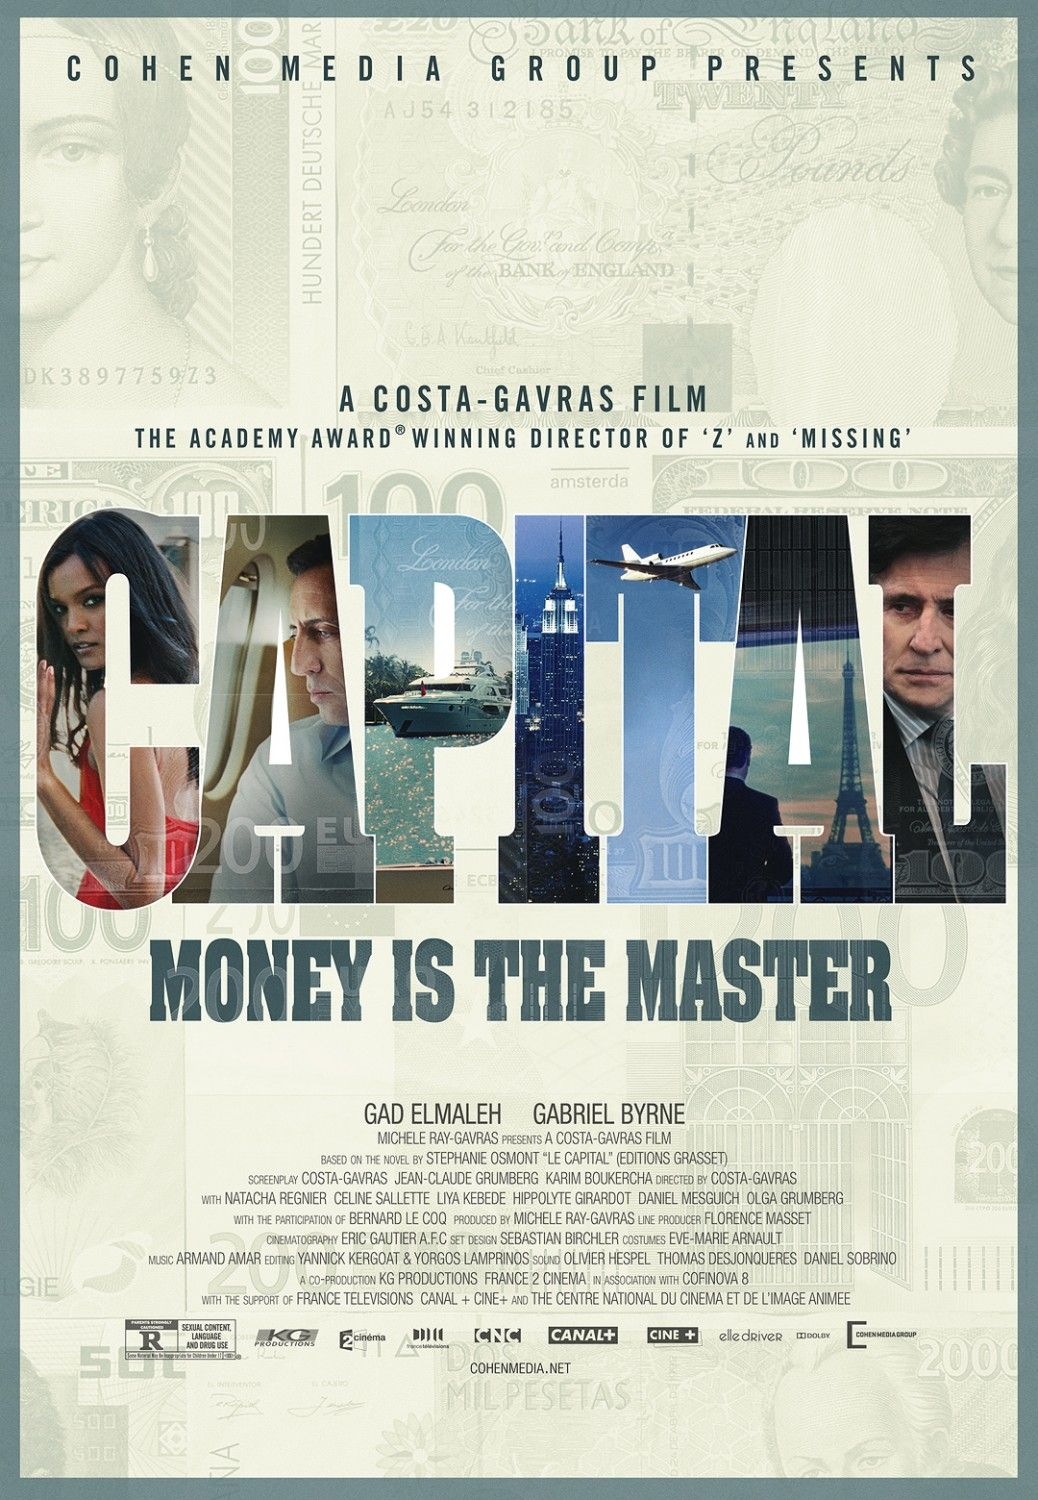 Capital Watch free movies online, Movies to watch free